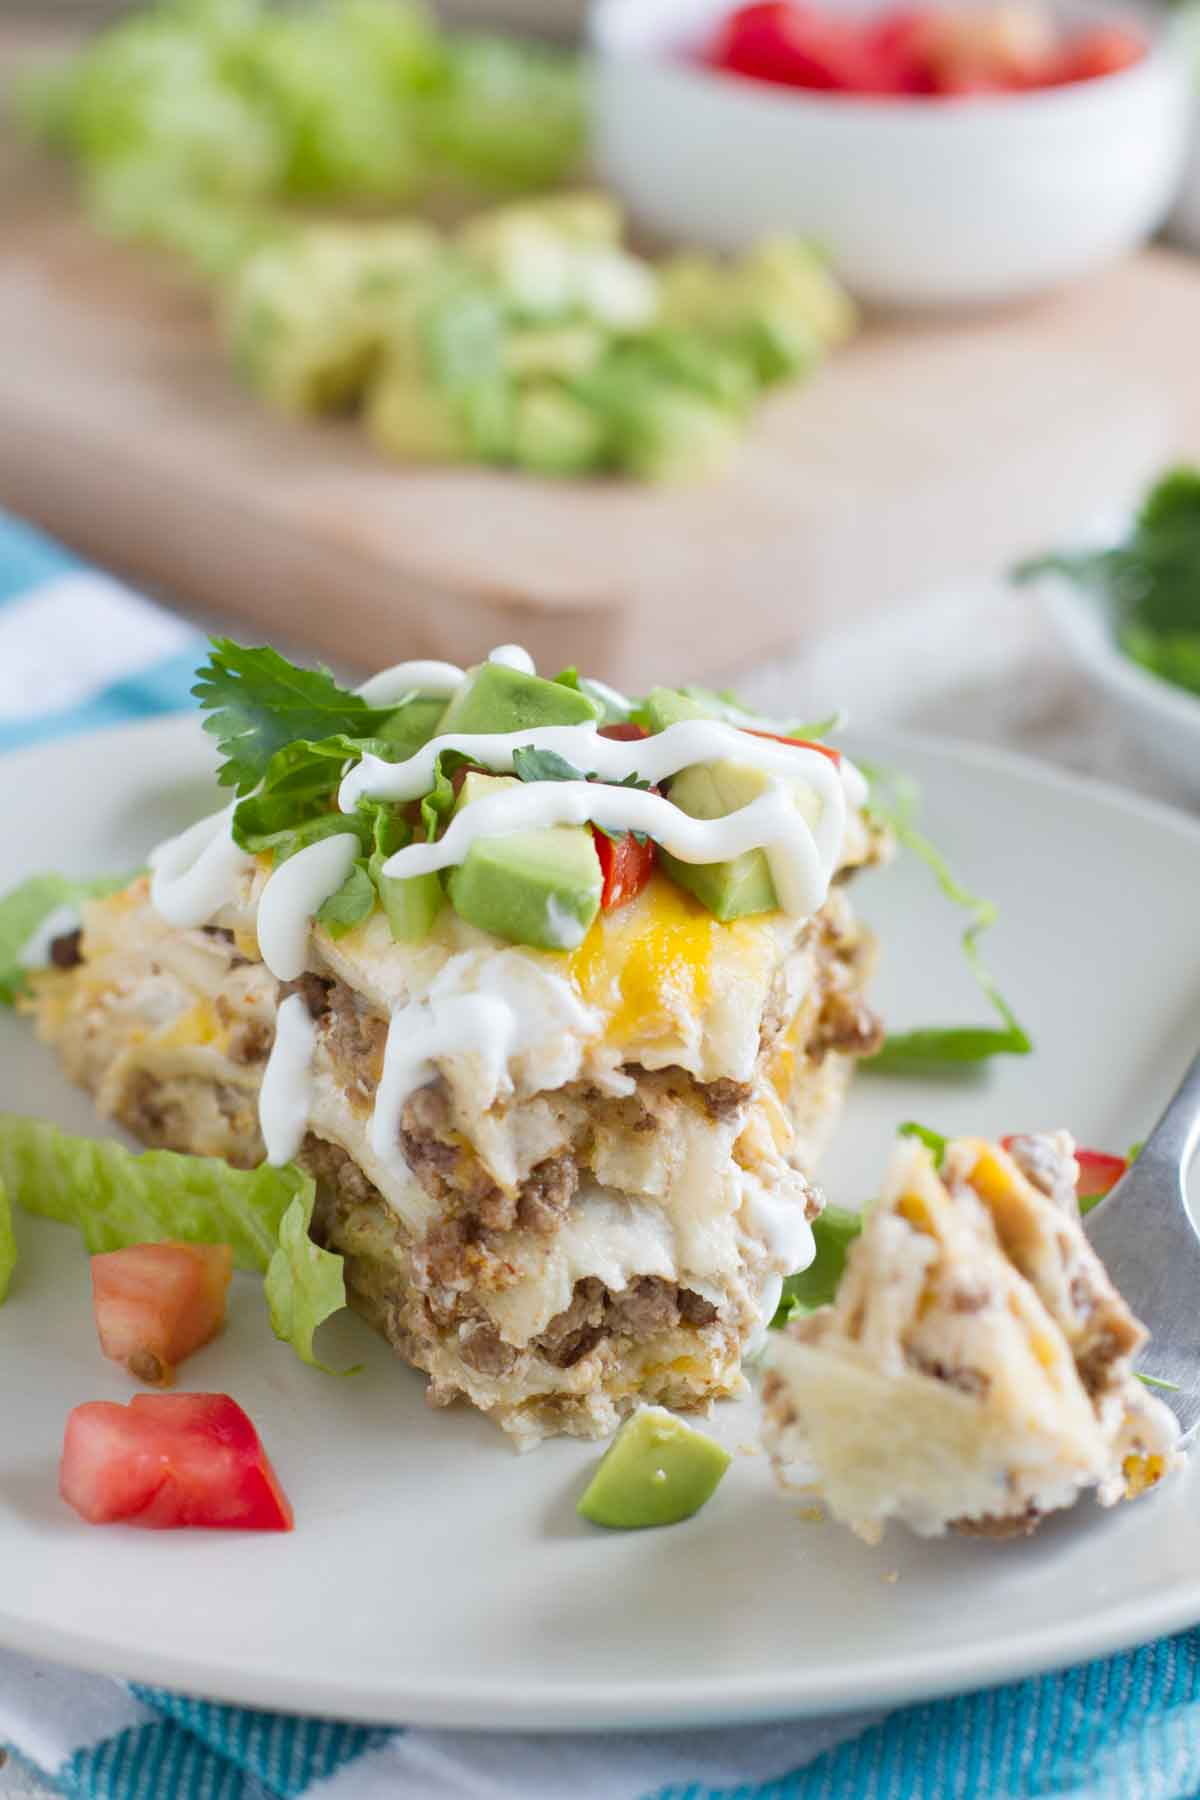 taco tortilla stack with a bite taken from it